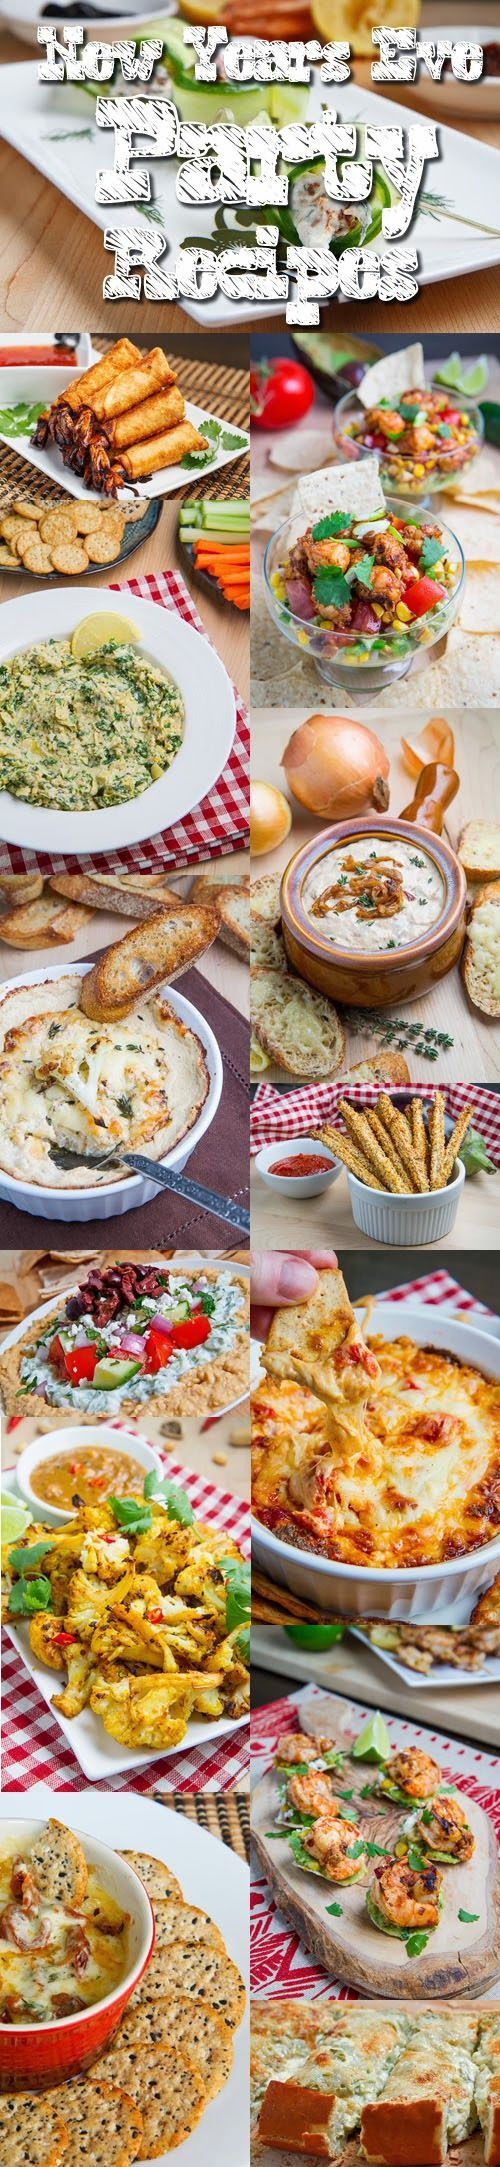 25 amazing appetizers for new years eve newyeareve ideas for Appetizer ideas for new years eve party